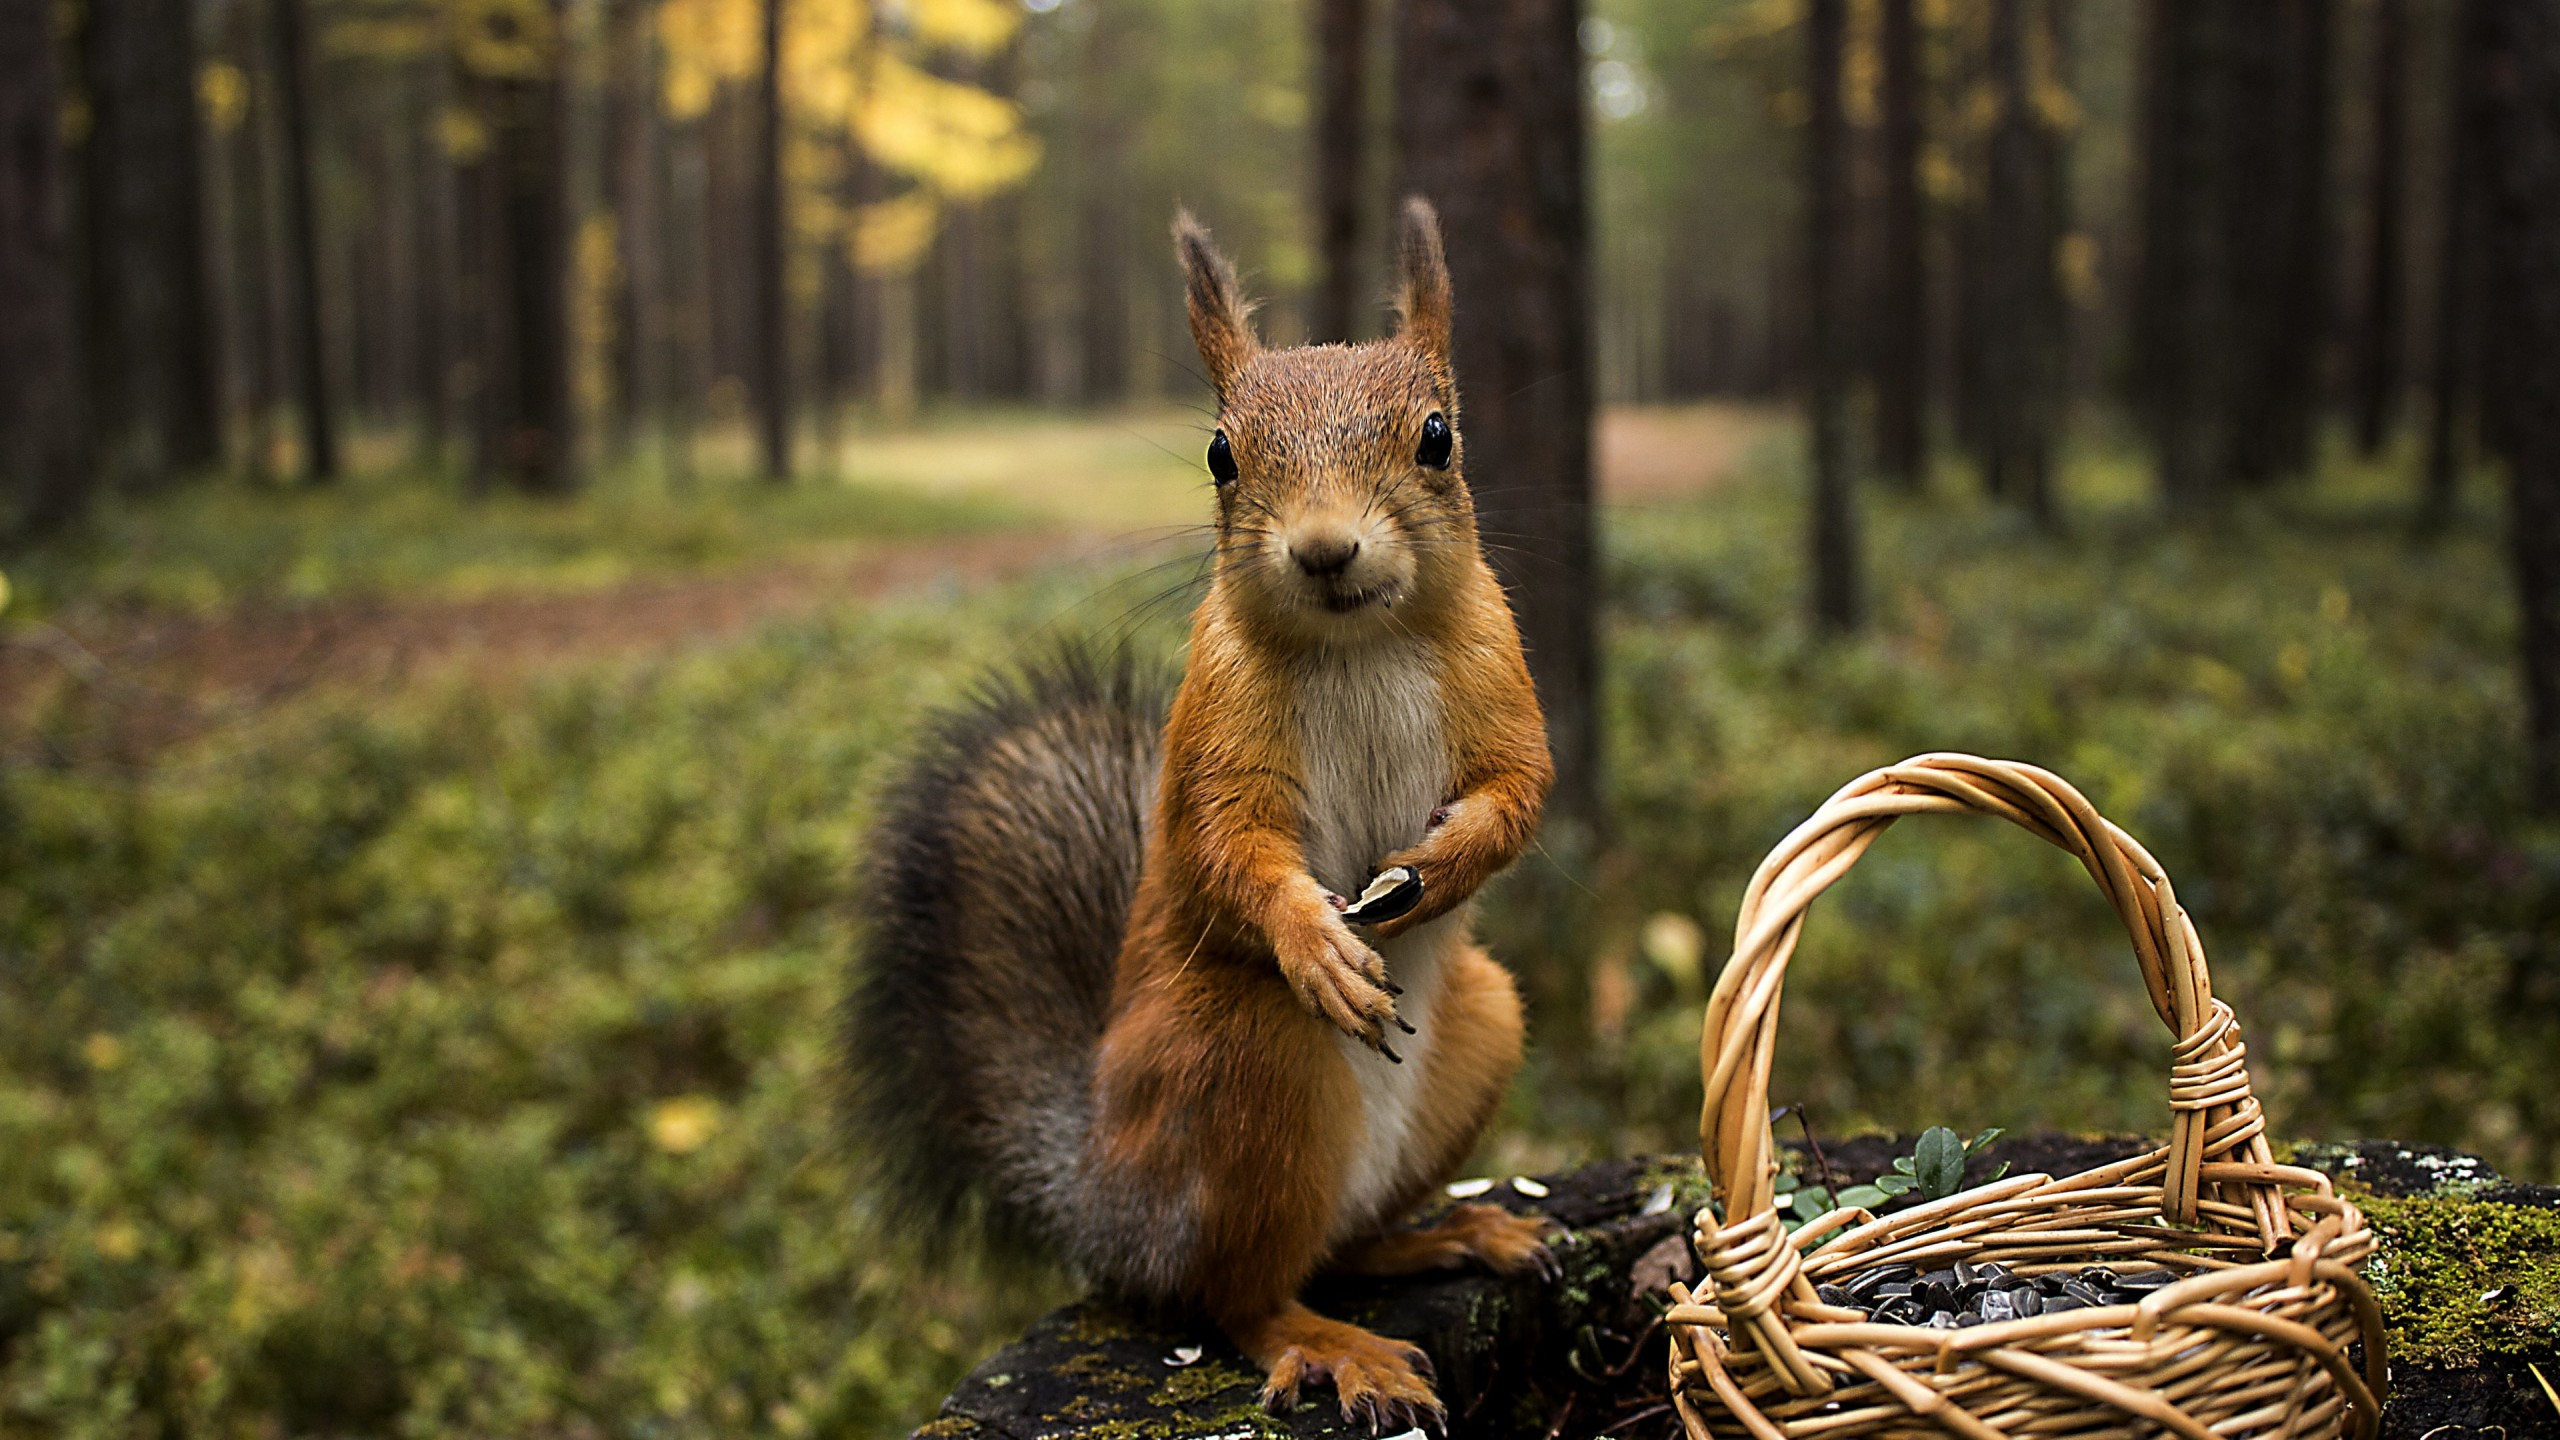 Red Squirrel Wallpaper for Social Media YouTube Channel Art